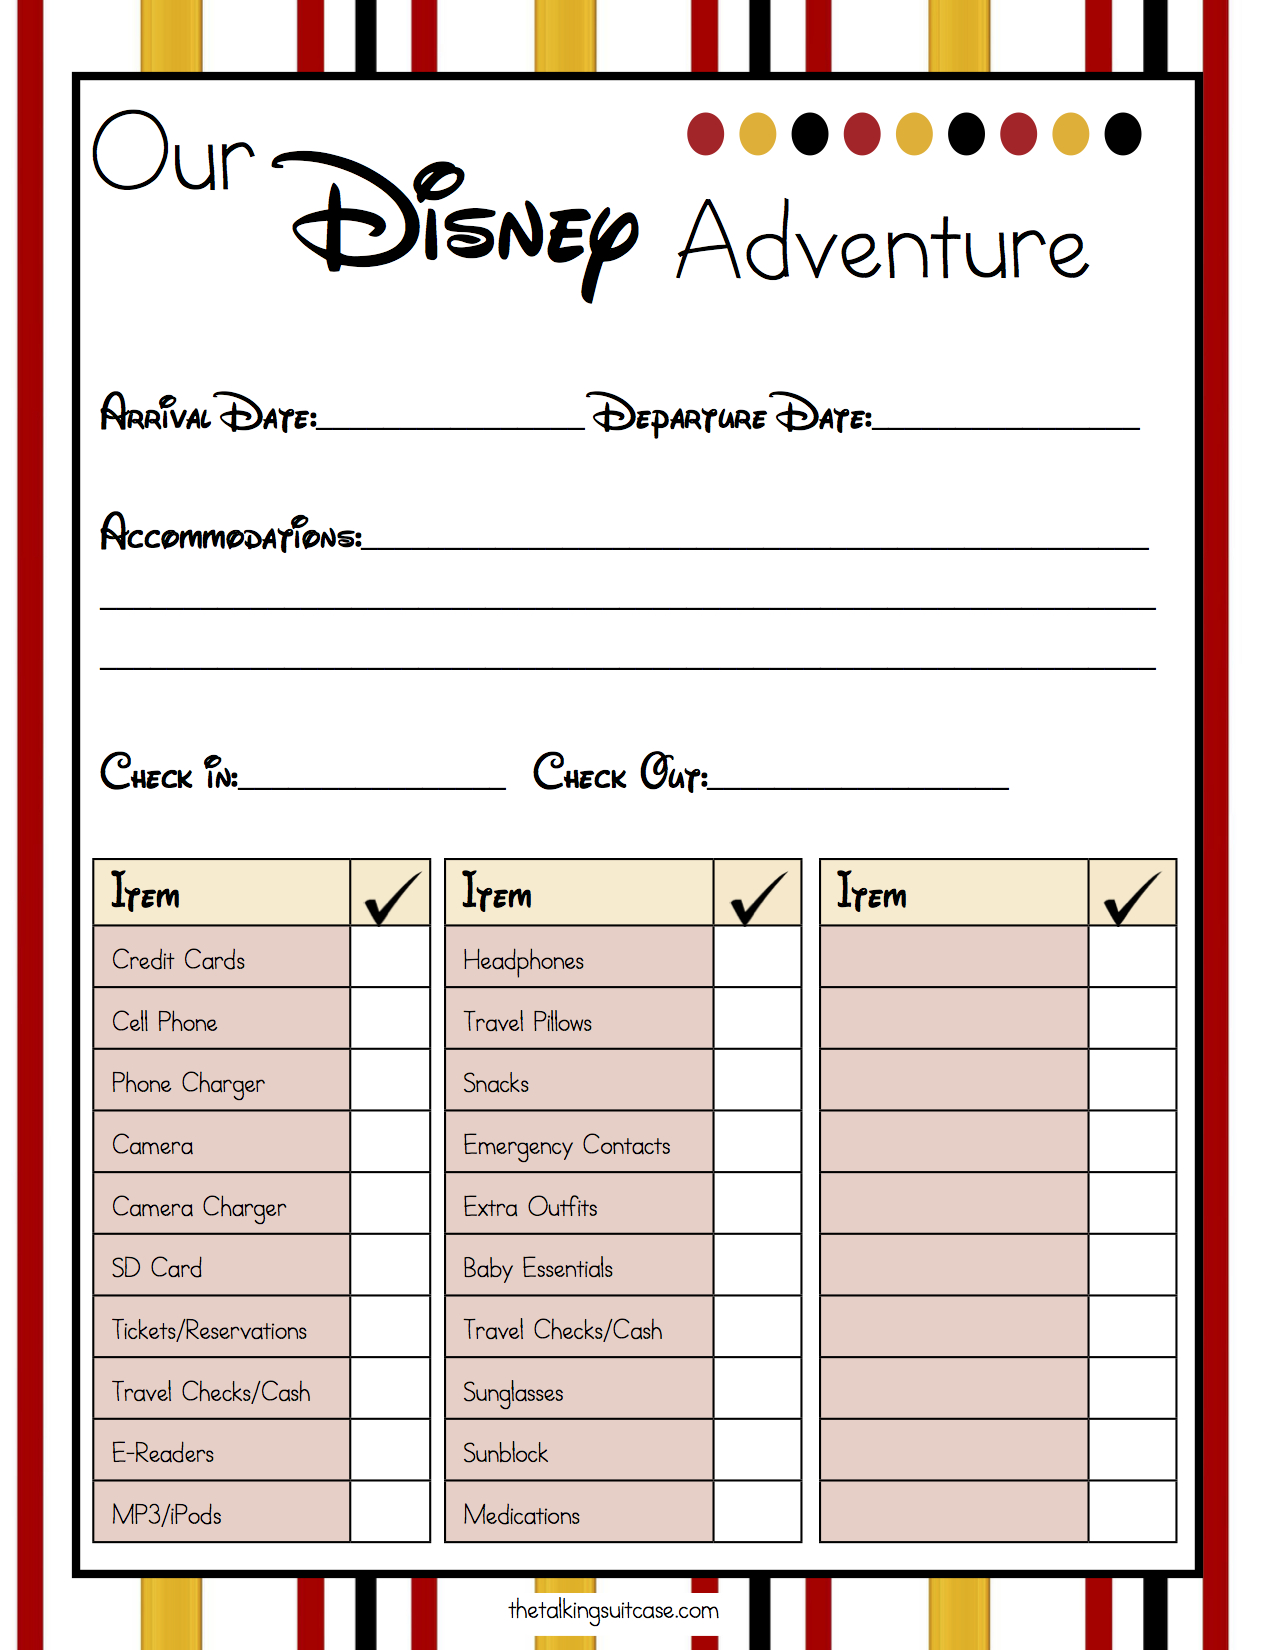 Get Ready For Your Disney Vacation - Free Printable Disney